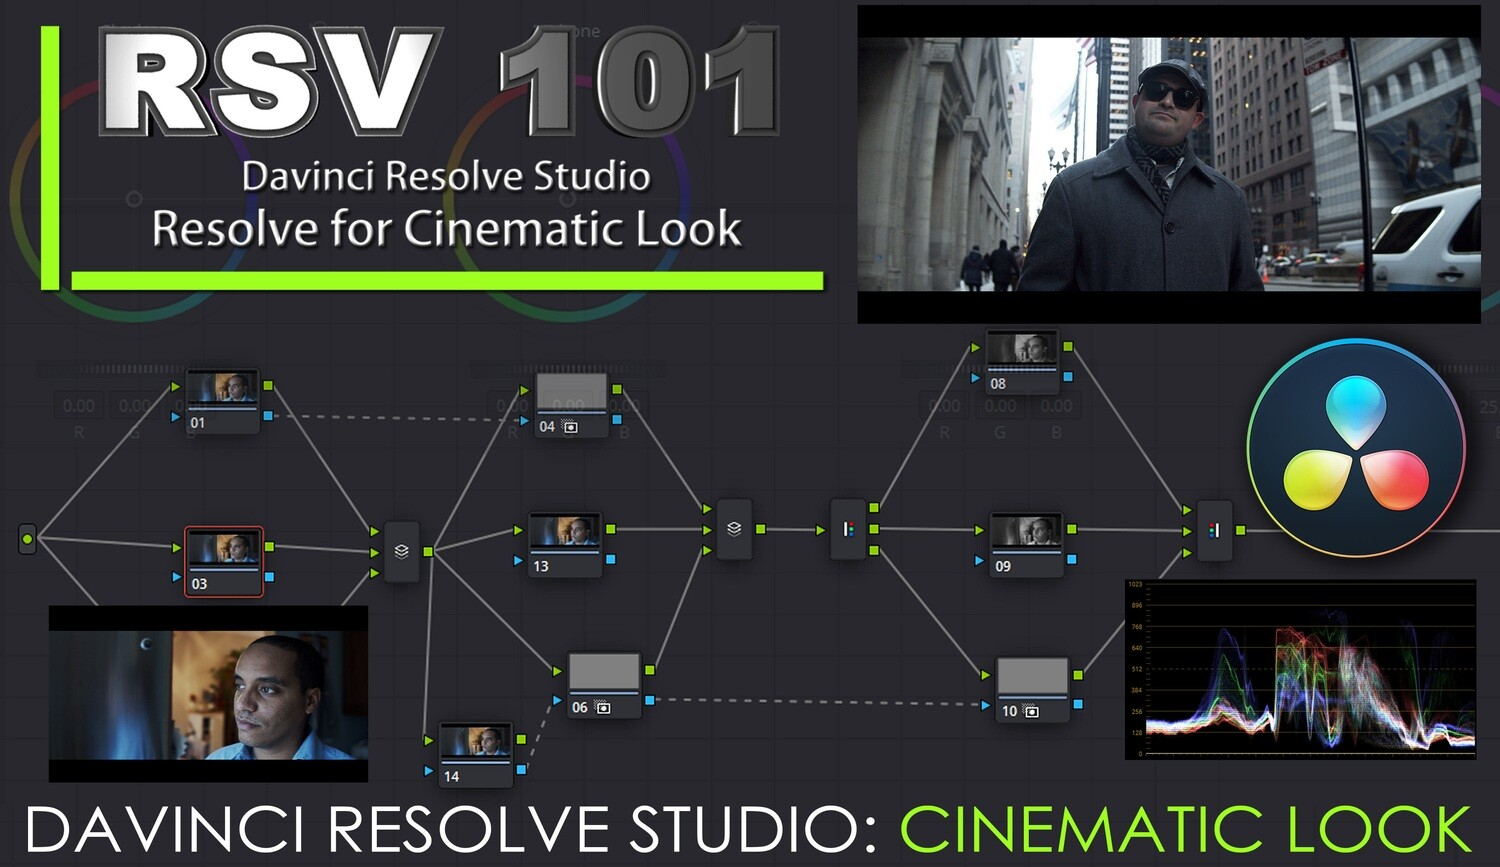 RSV 101- Davinci Resolve for Cinematic Look